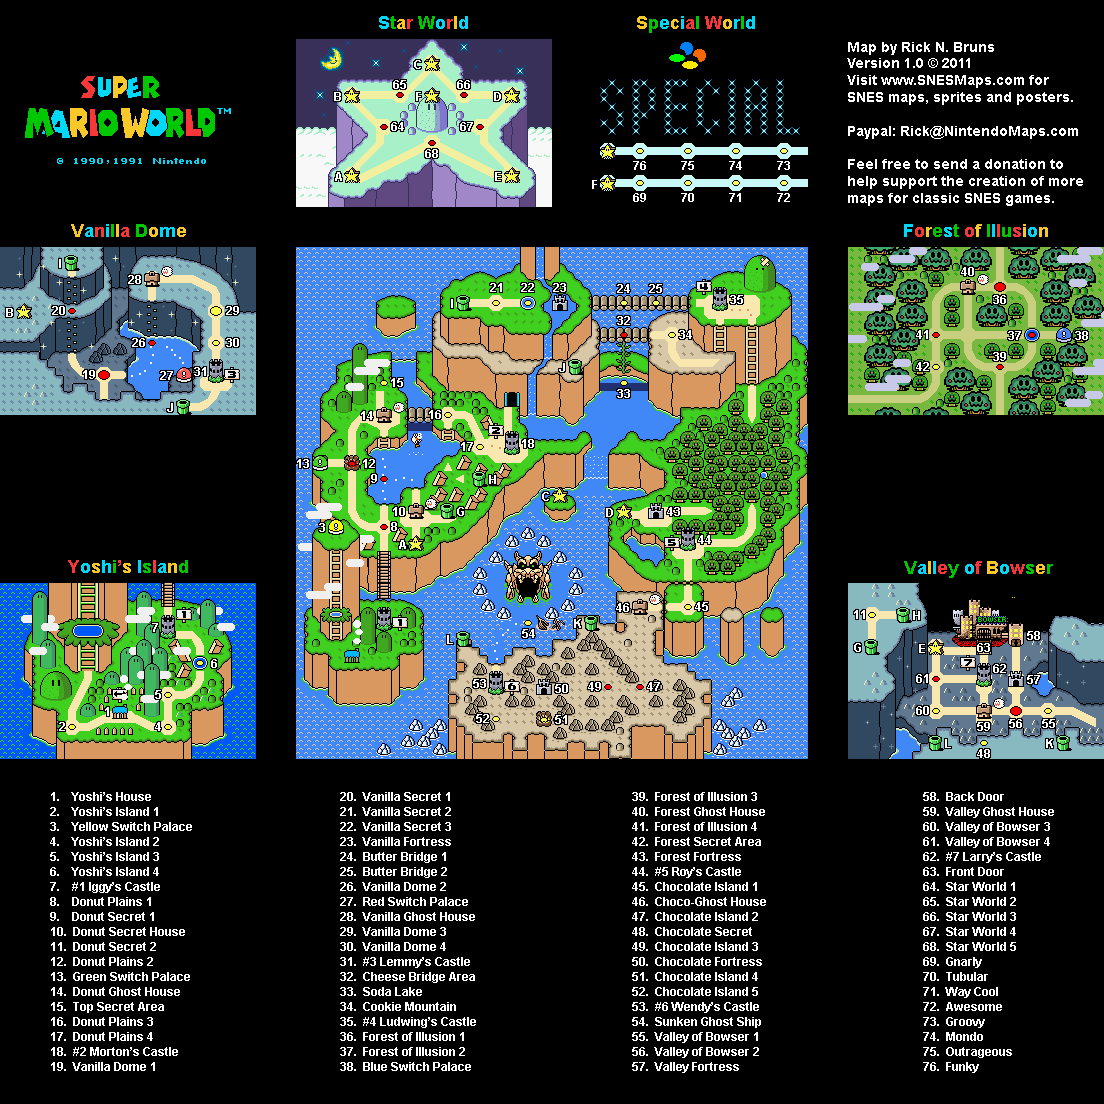 Super Mario World - Overworld Super Nintendo SNES Map